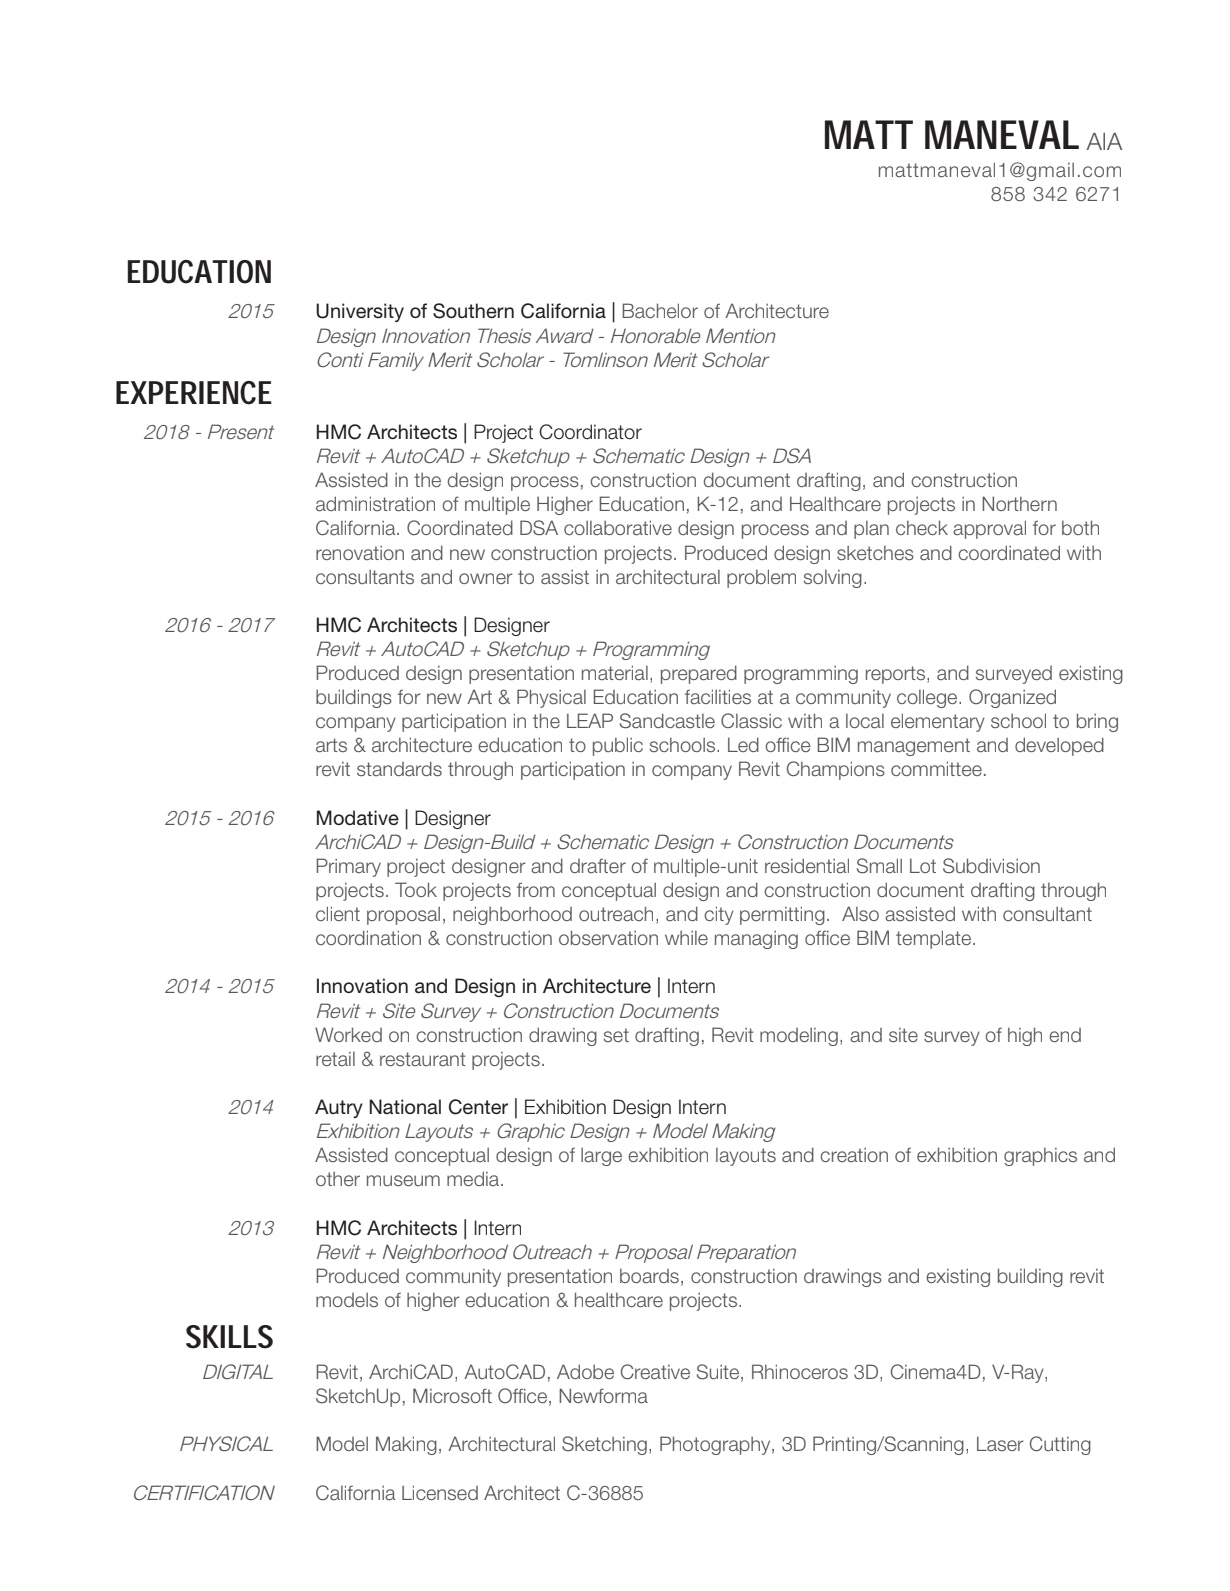 Aia Certification Images - certificate design template free